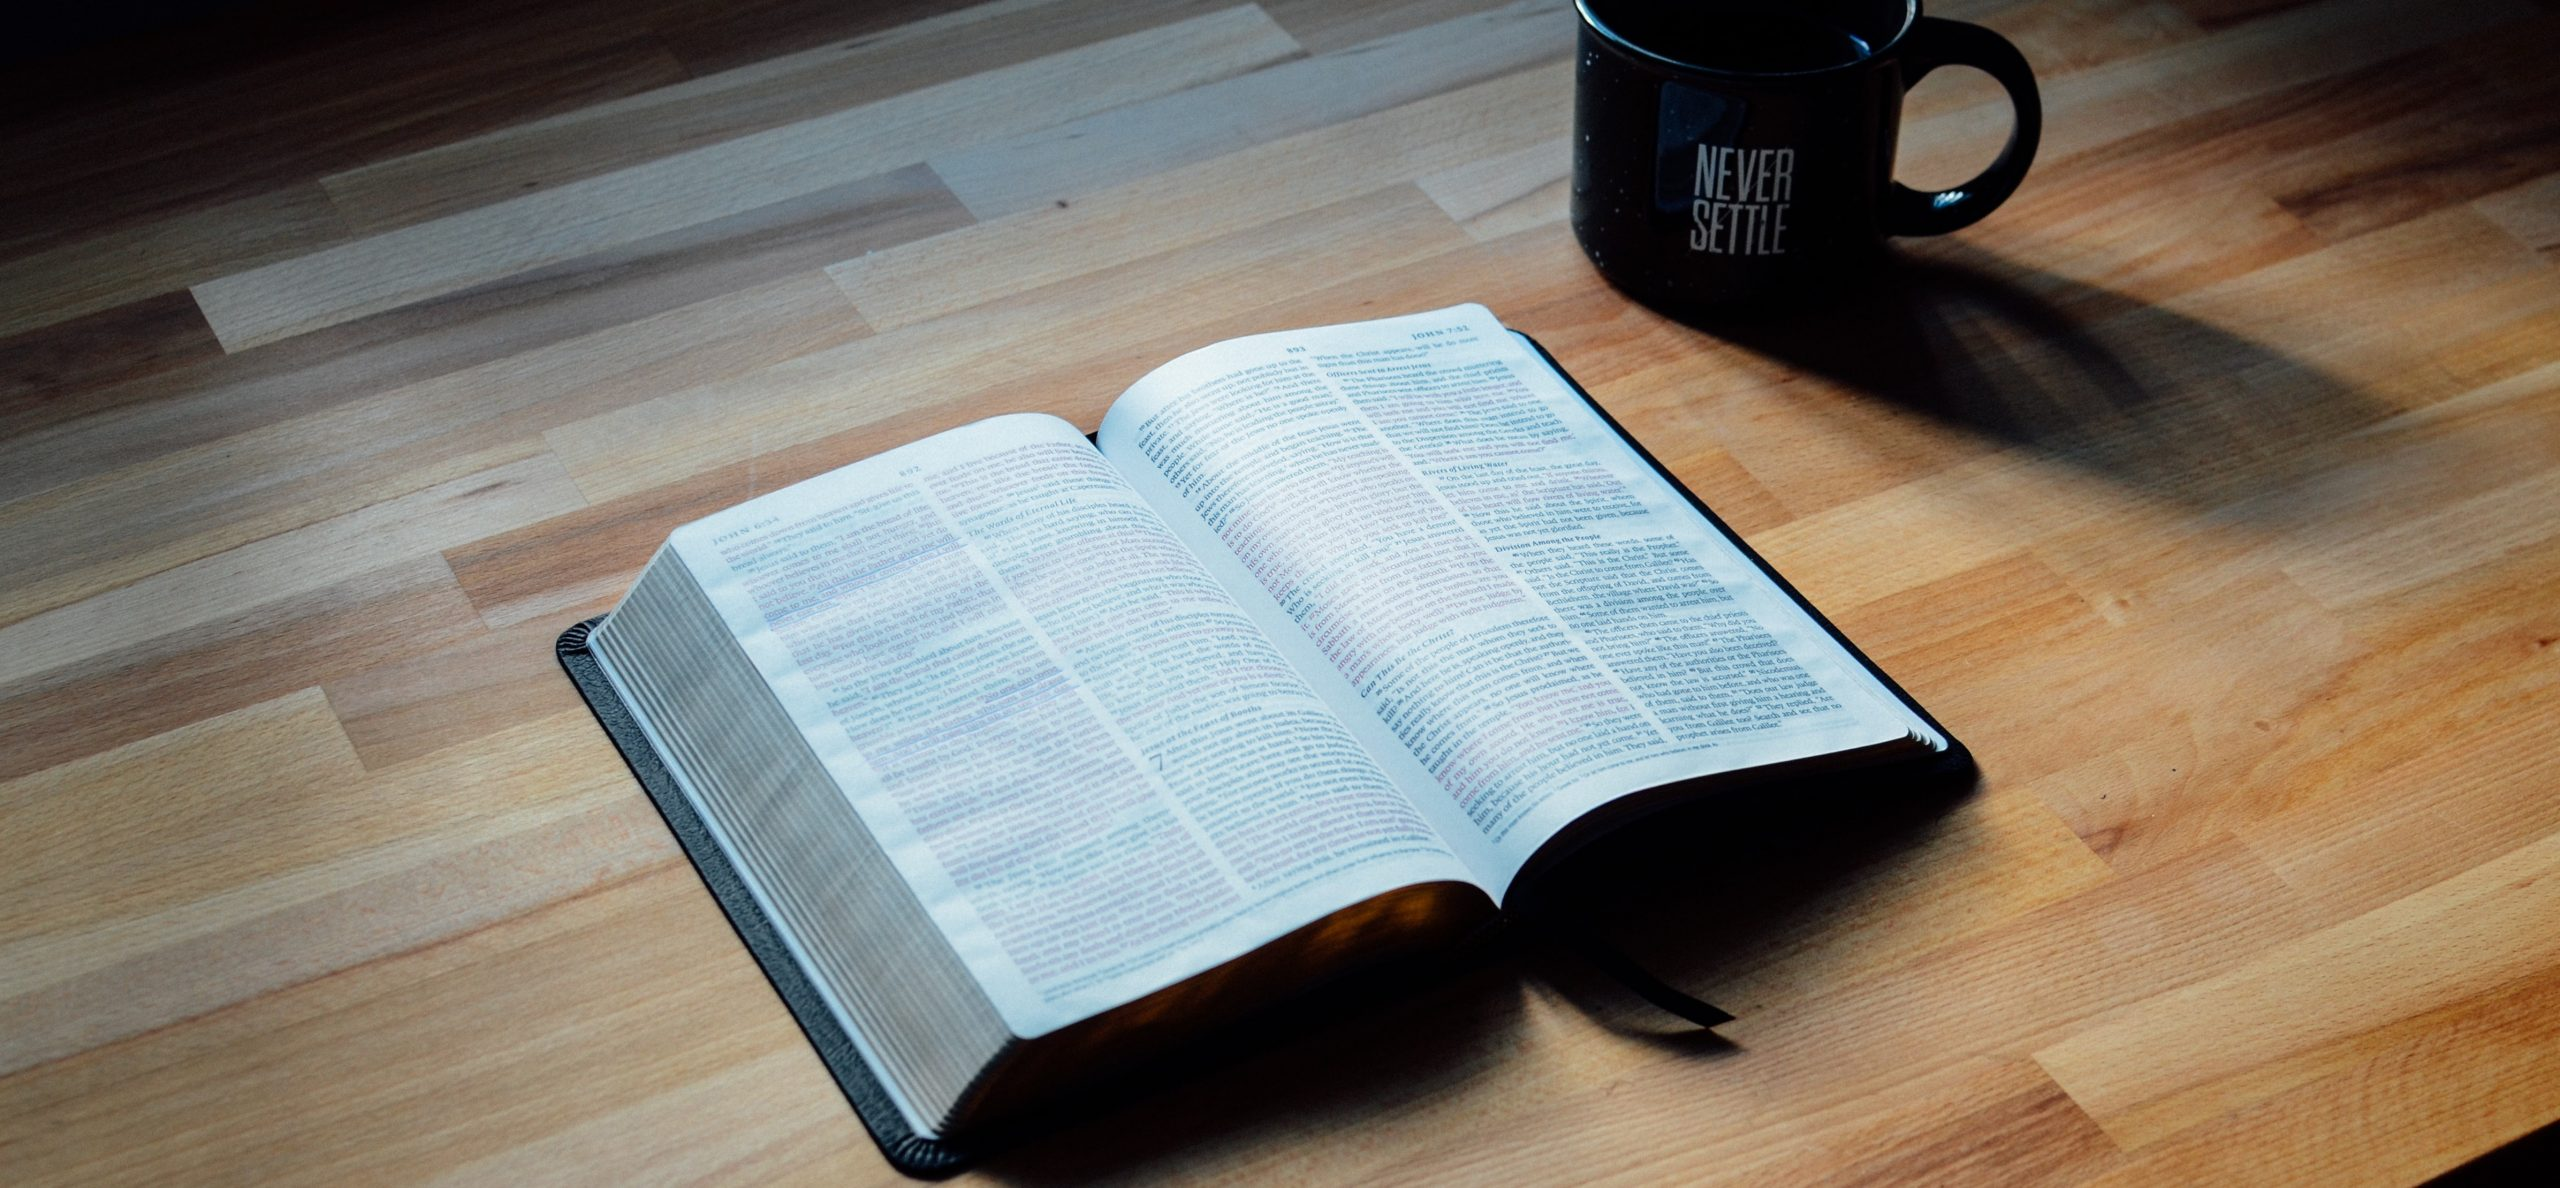 What The Bible Says About Being A Lukewarm Christian